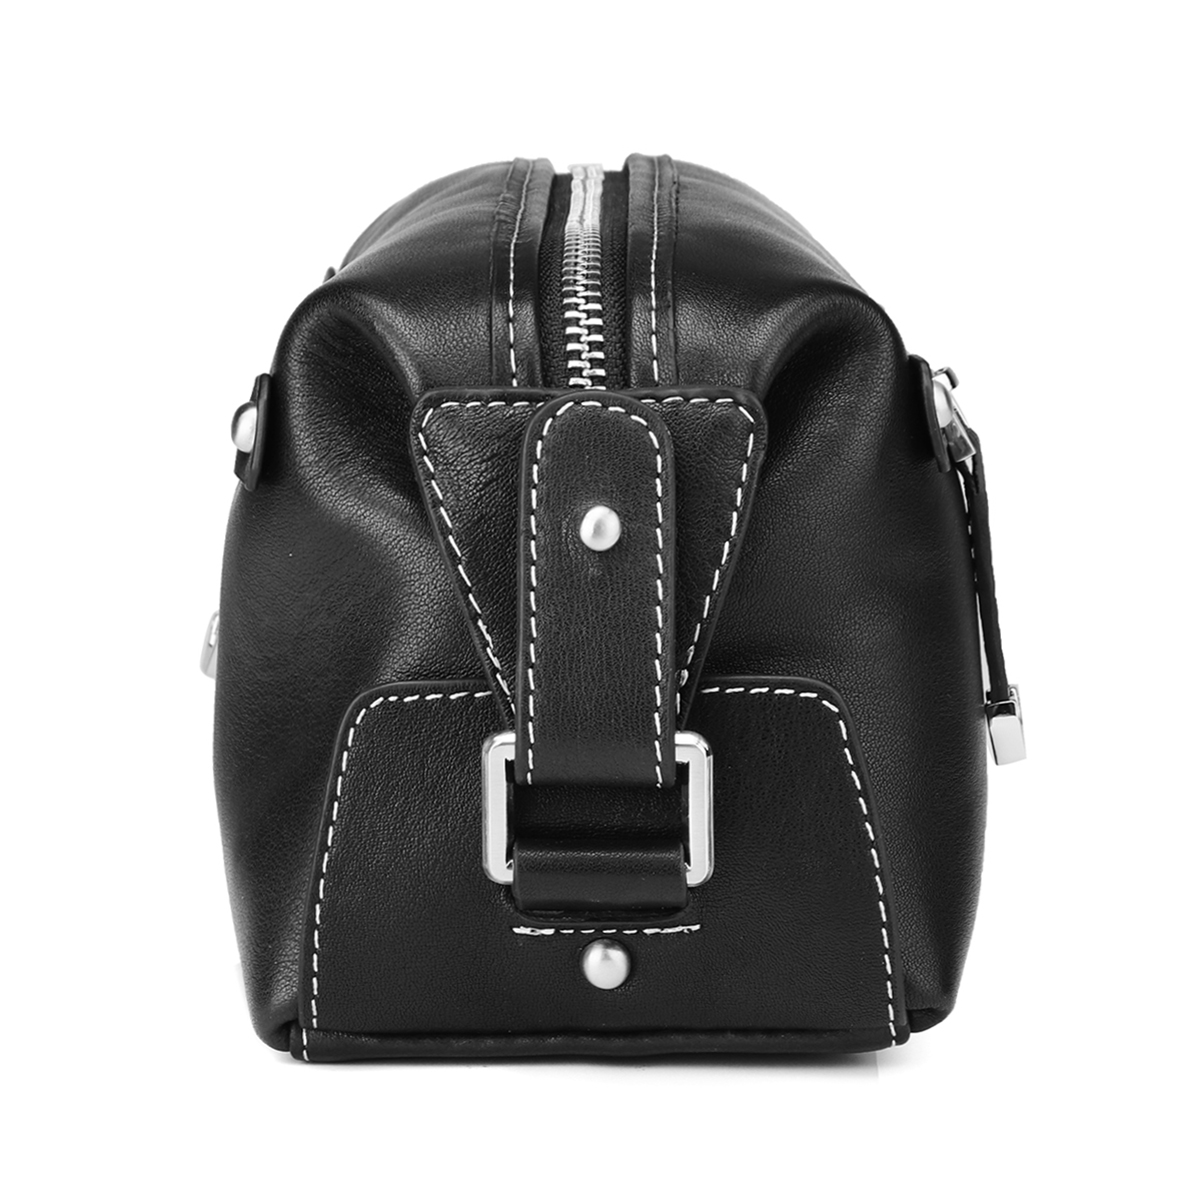 HT Genuine Leather Day Clutches Men Handbags Black Handy Bags Zipper Male Purses Cow Leather Square Top Handle Bags Zipper-in Top-Handle Bags from Luggage & Bags    2